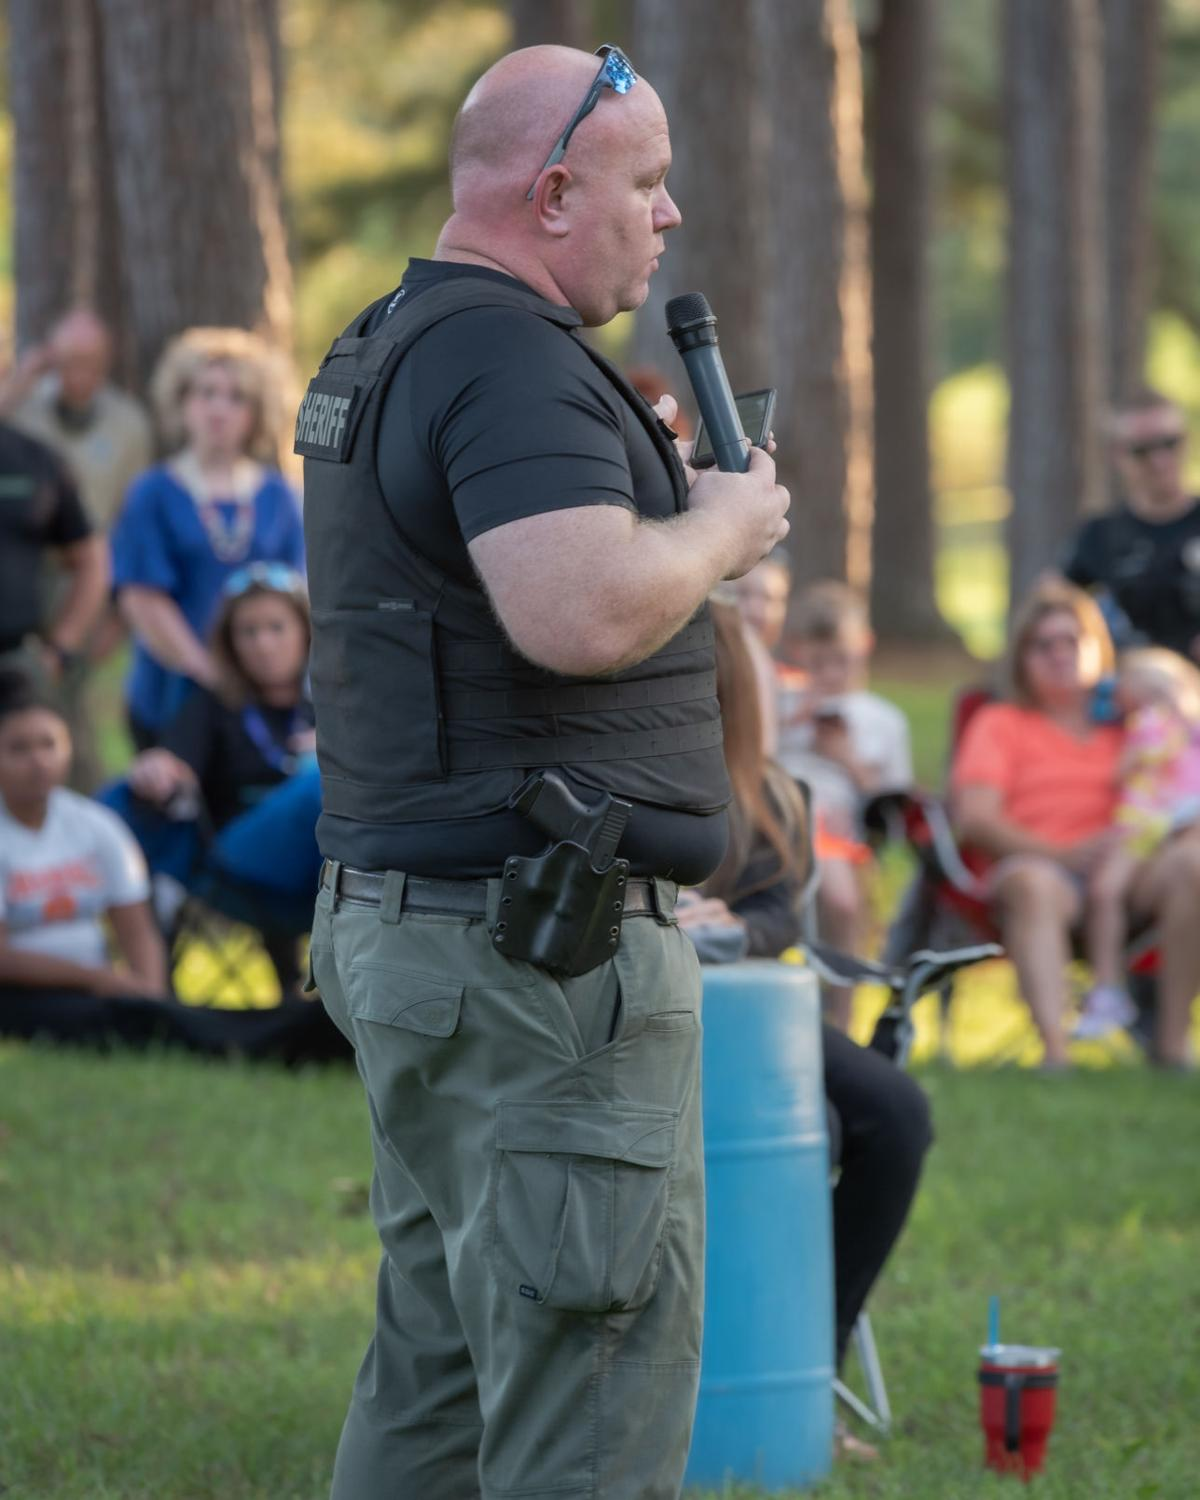 First responders speak to community about radio troubles  PHOTO 2